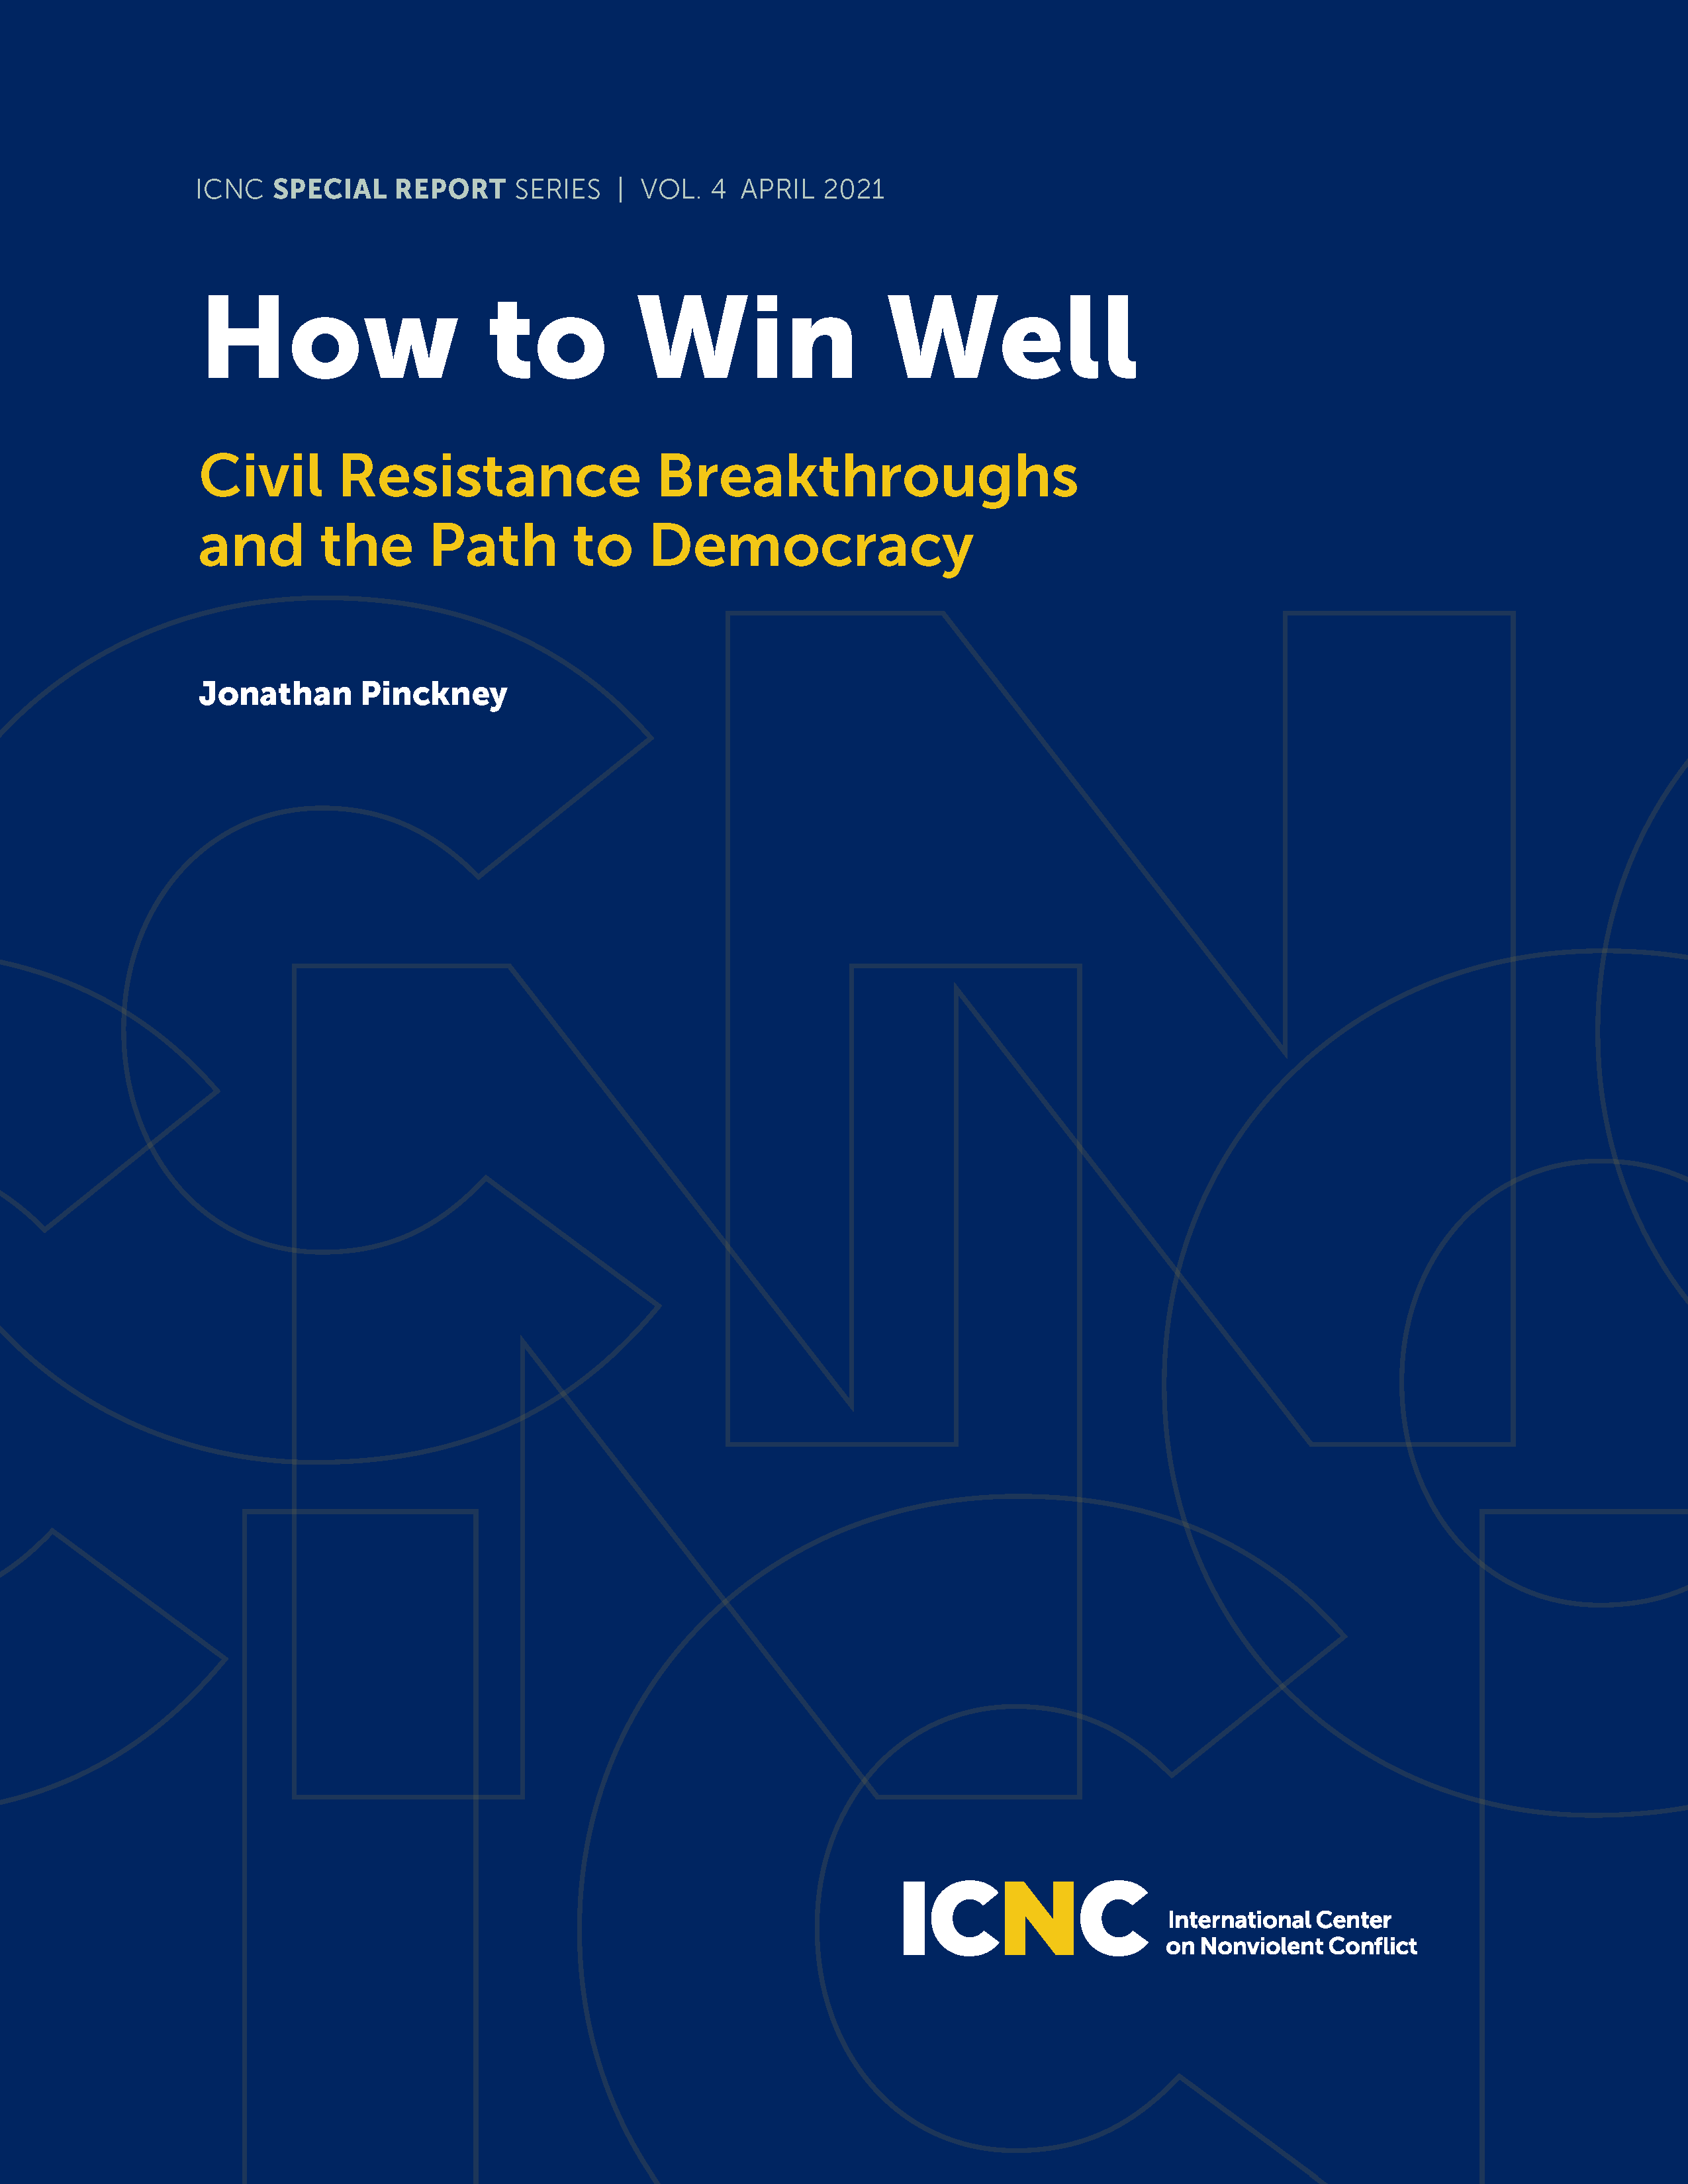 How to Win Well: Civil Resistance Breakthroughs and the Path to Democracy